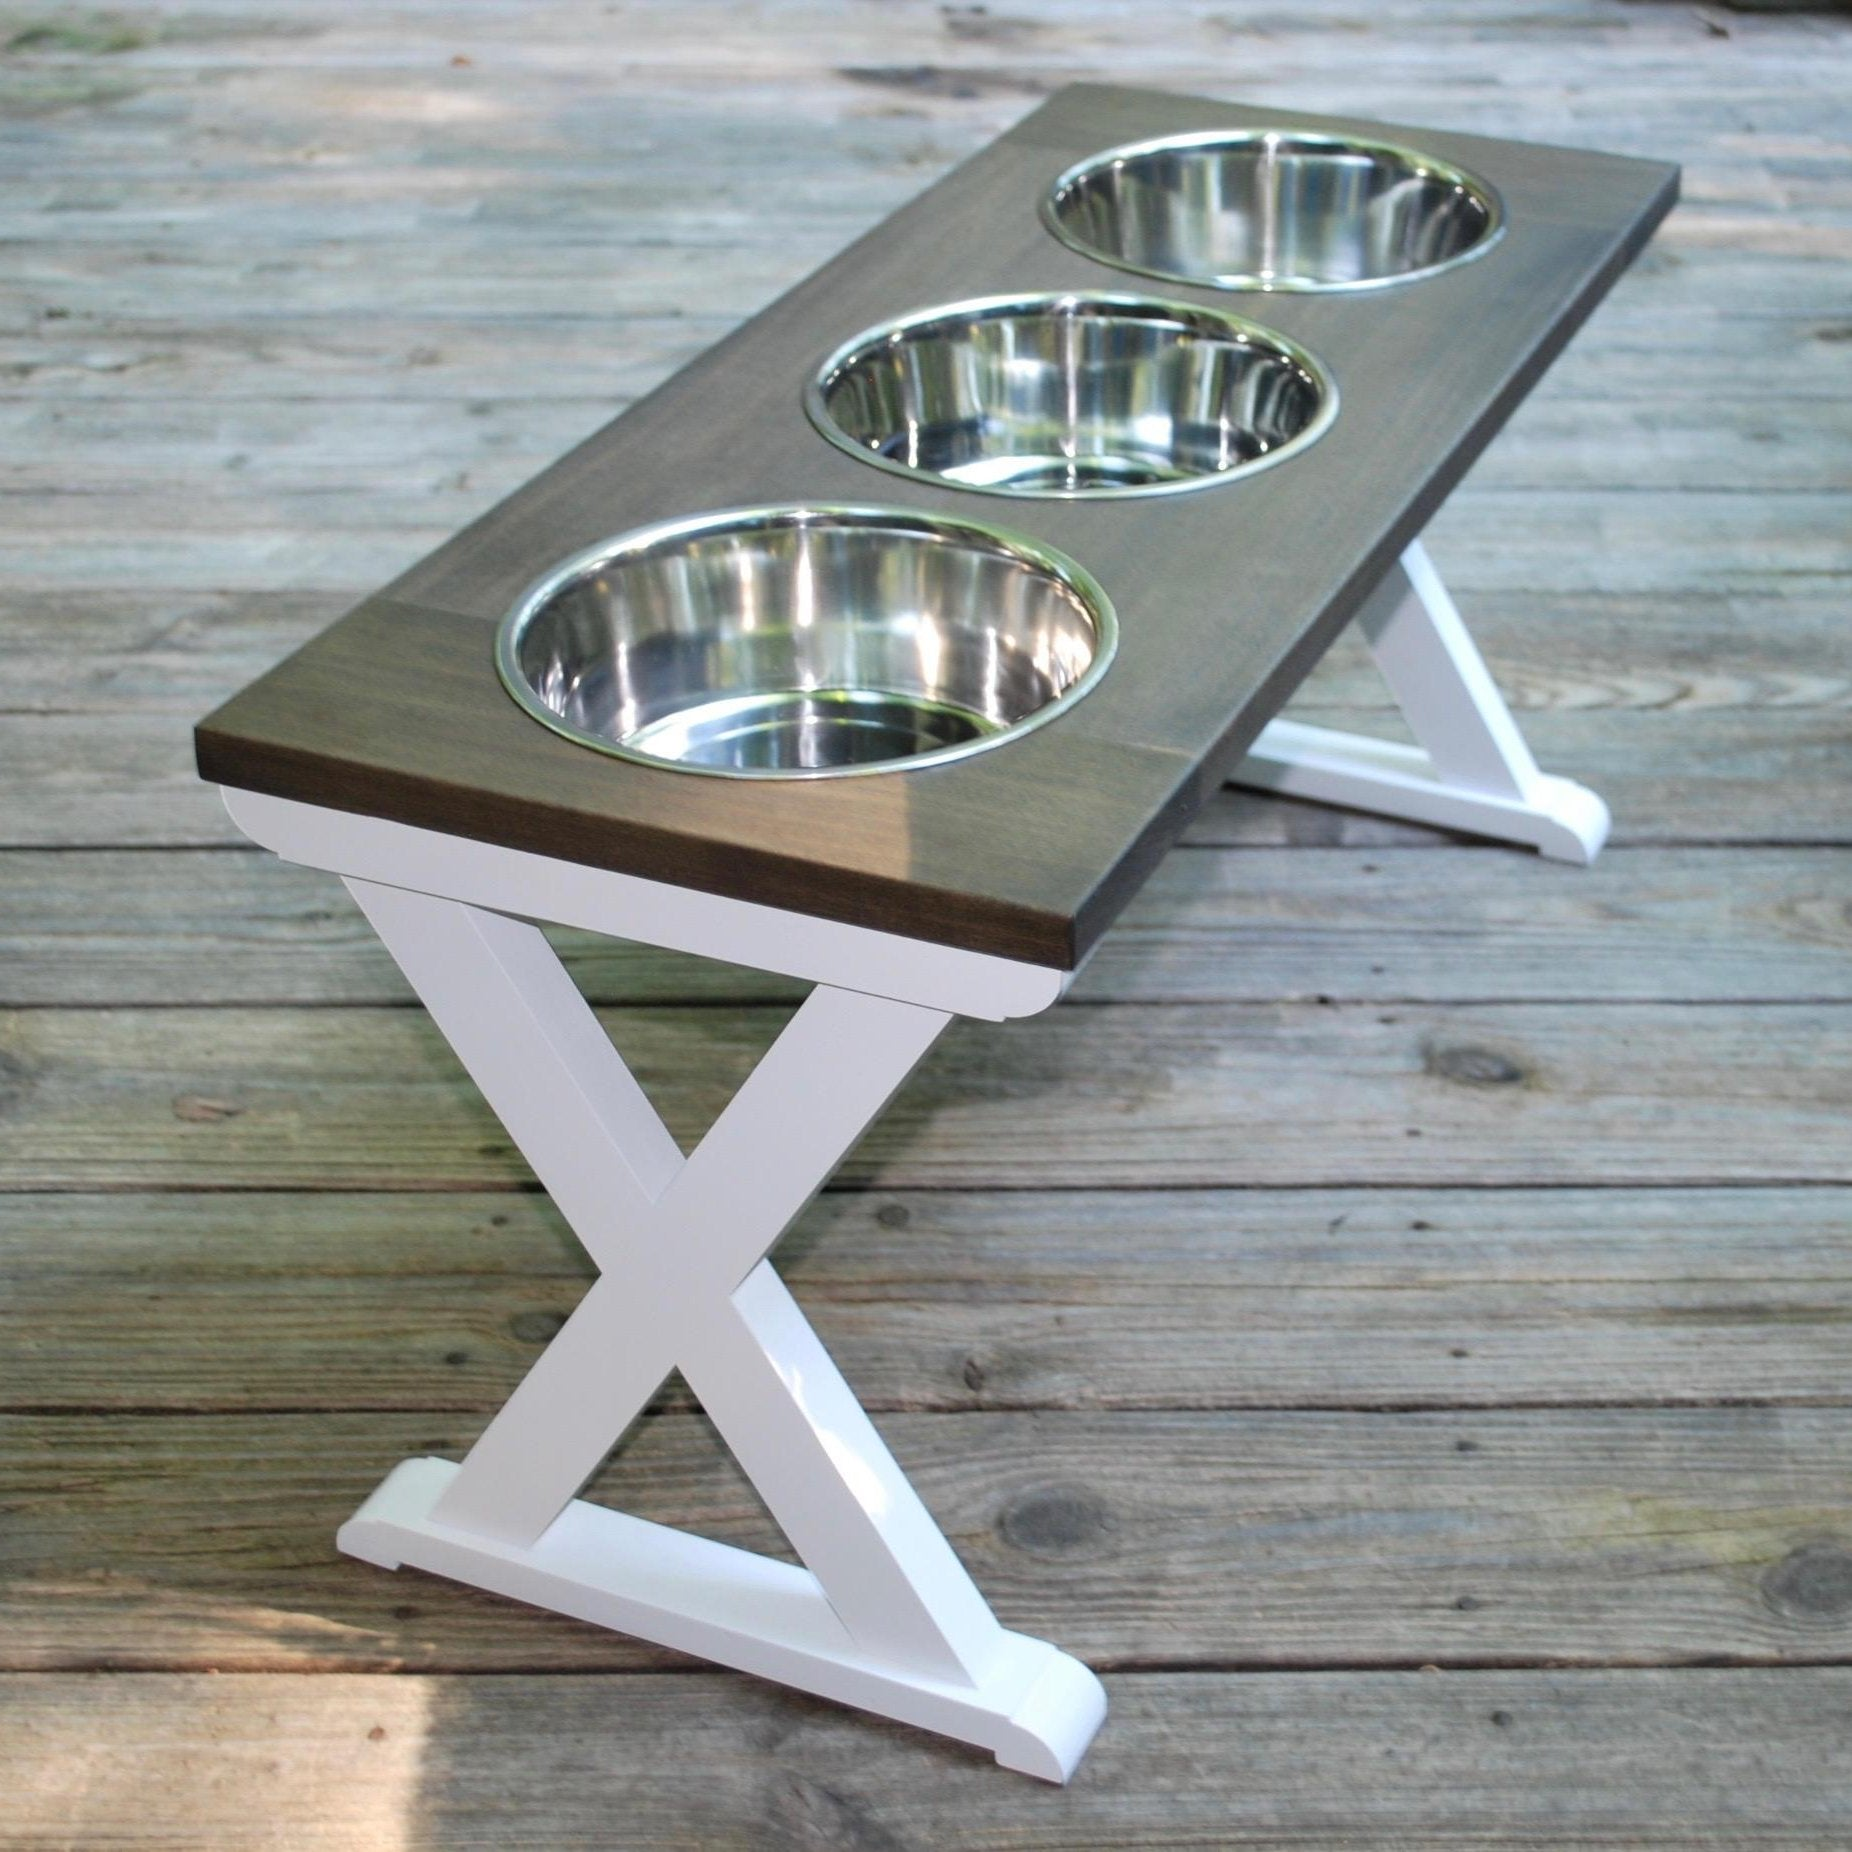 Large Elevated Dog Bowl Stand Raised Dog Bowl X Pattern 10 Tall \u2013 Dog Lover Gift Farmhouse Table Dog Mom Gift 3 Bowls